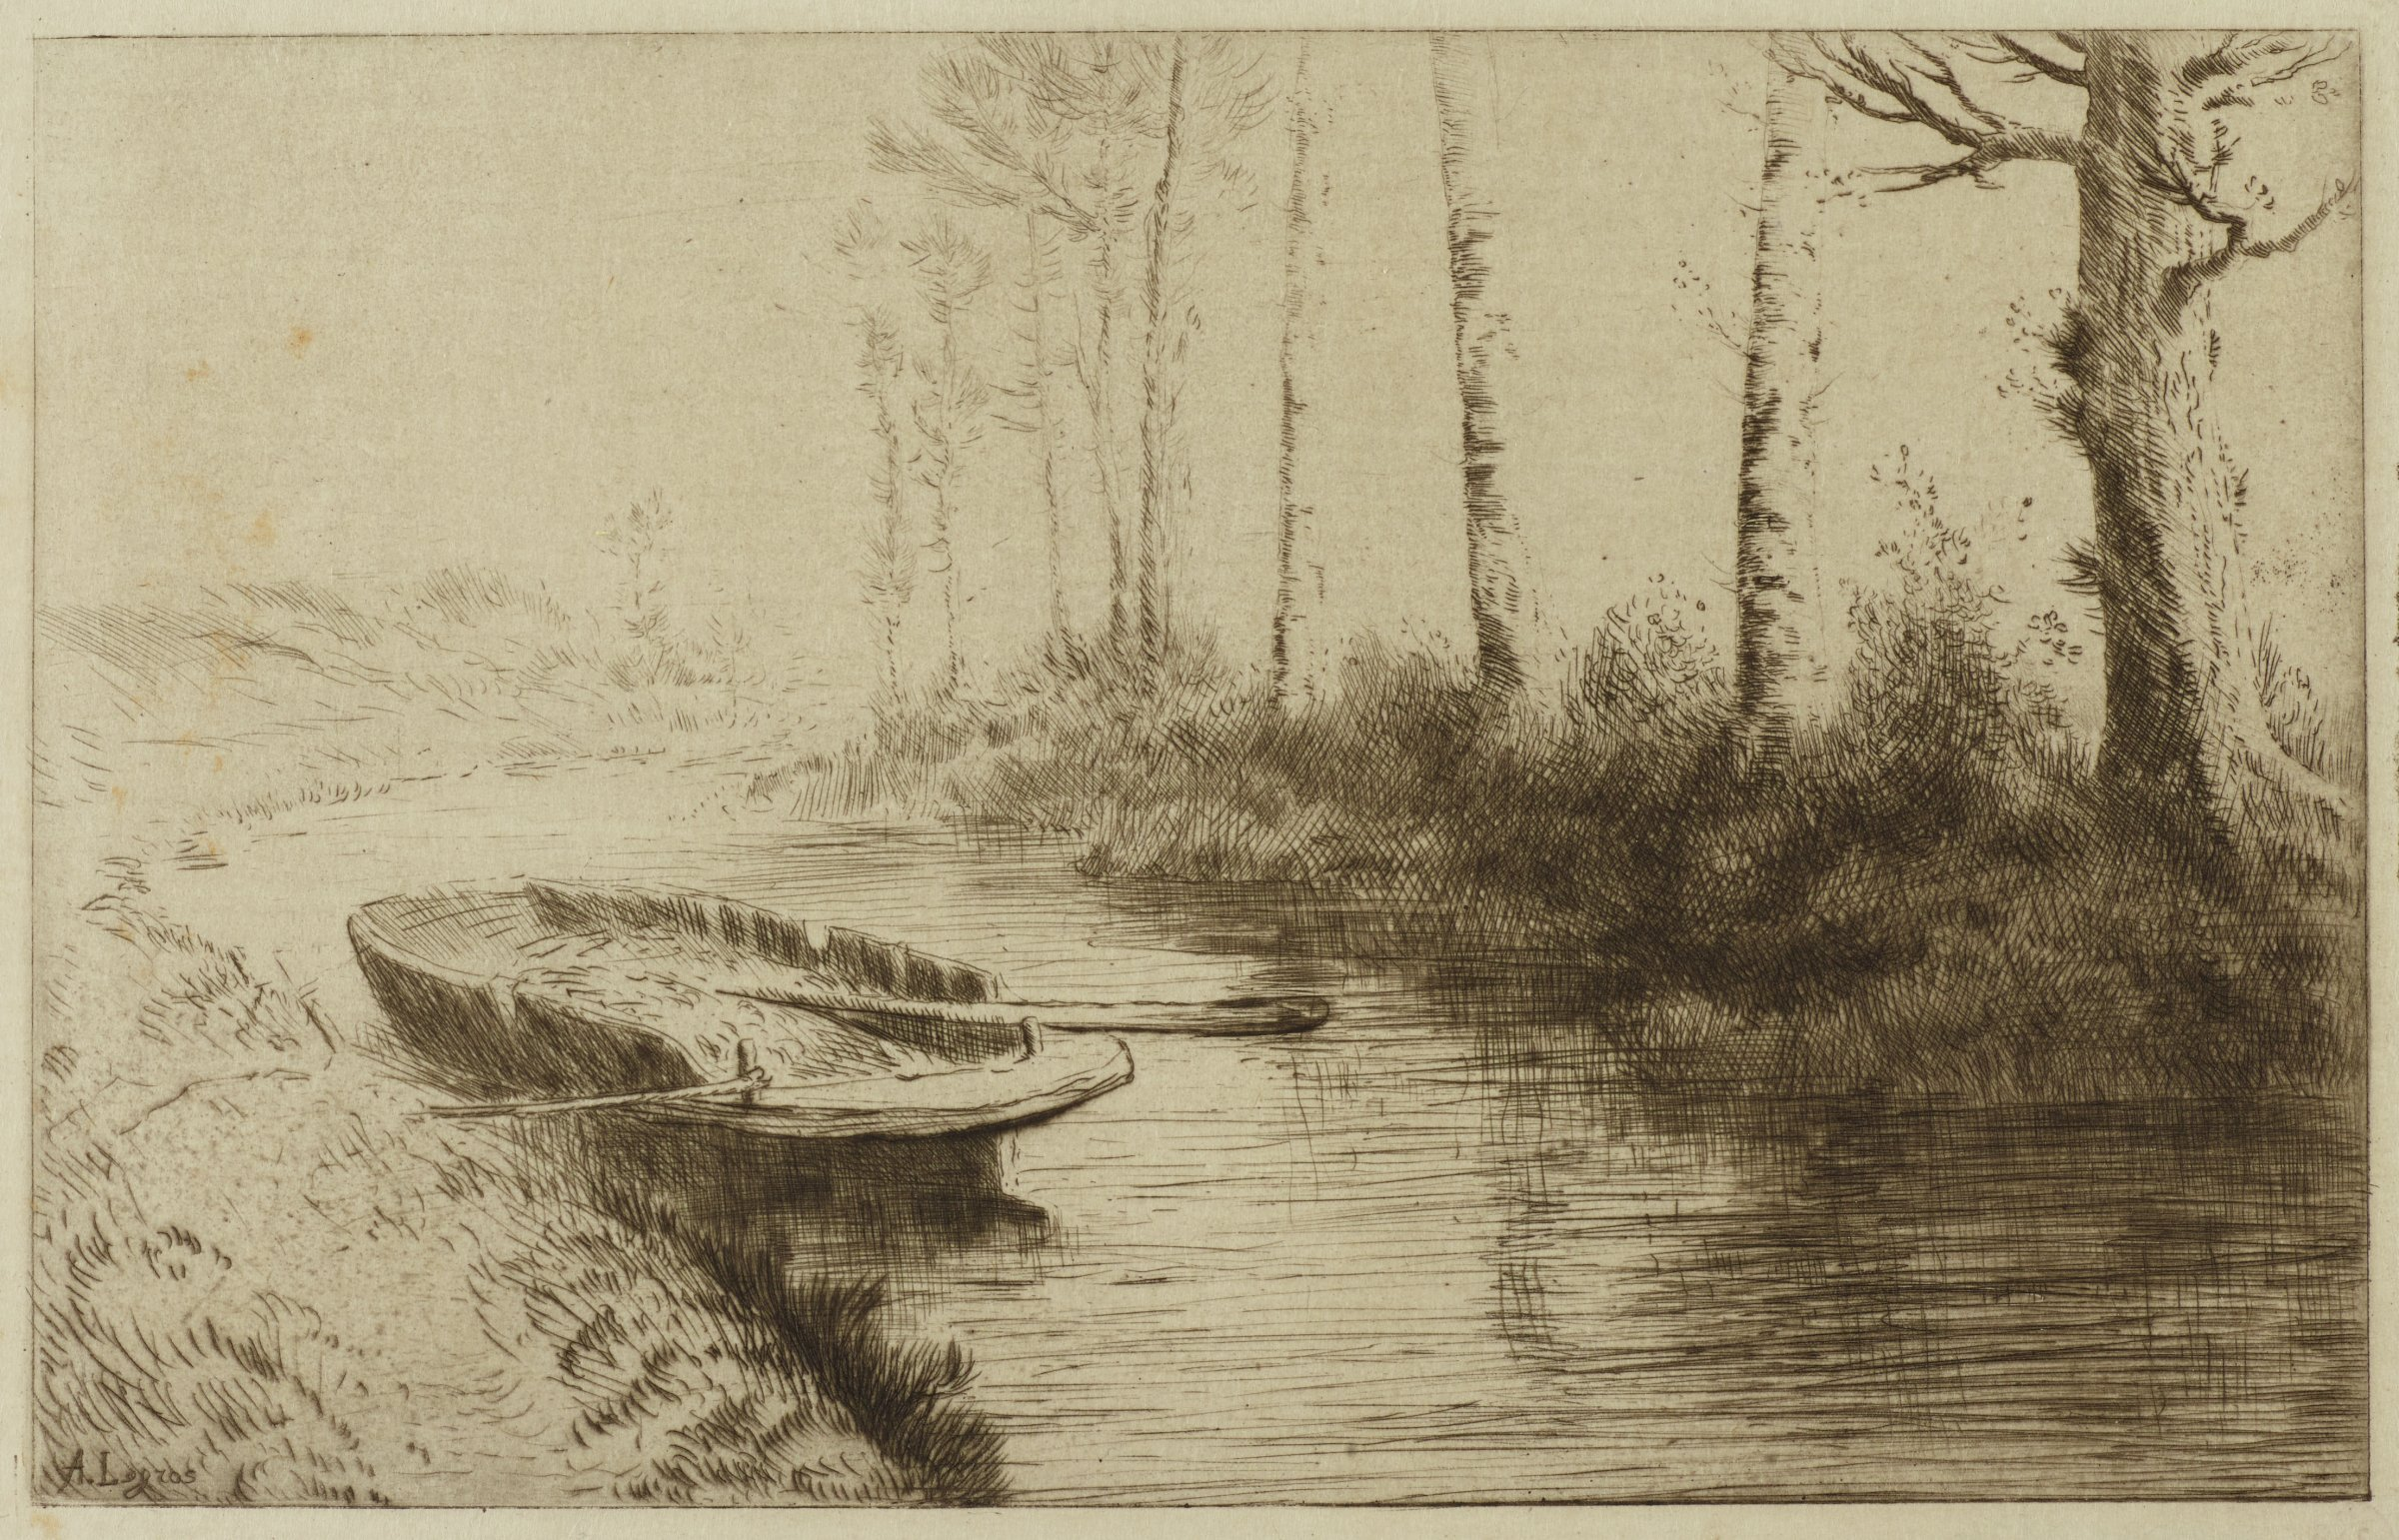 An empty canoe is tied to the bank of a canal. A row of trees populate the opposite bank.